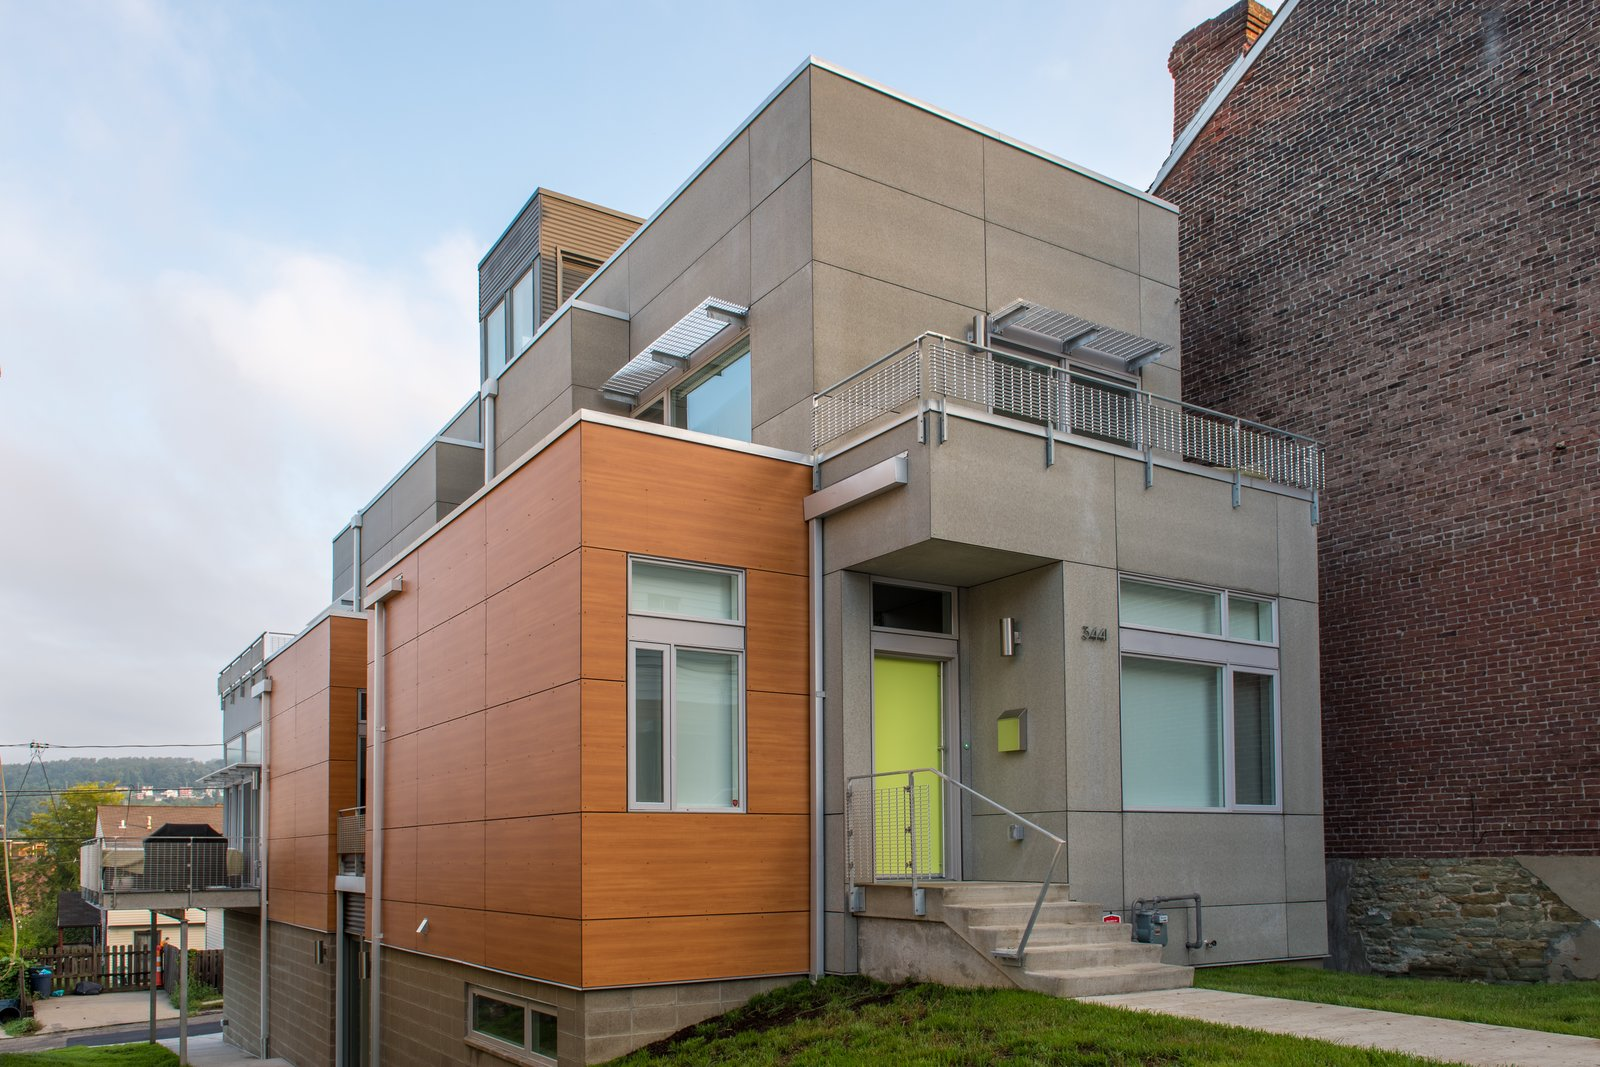 The massing of the Ligonier Street Residence largely consists of a narrow, articulated rectangular volume that is bisected by a custom central staircase that links all four levels of the 3,557 square foot home. The natural sloping topography of the site allows for access to the home at the lower basement level from an alley condition at the downhill property edge and at the first floor from the public street at the uphill property edge.  Ligonier Street Residence by mossArchitects